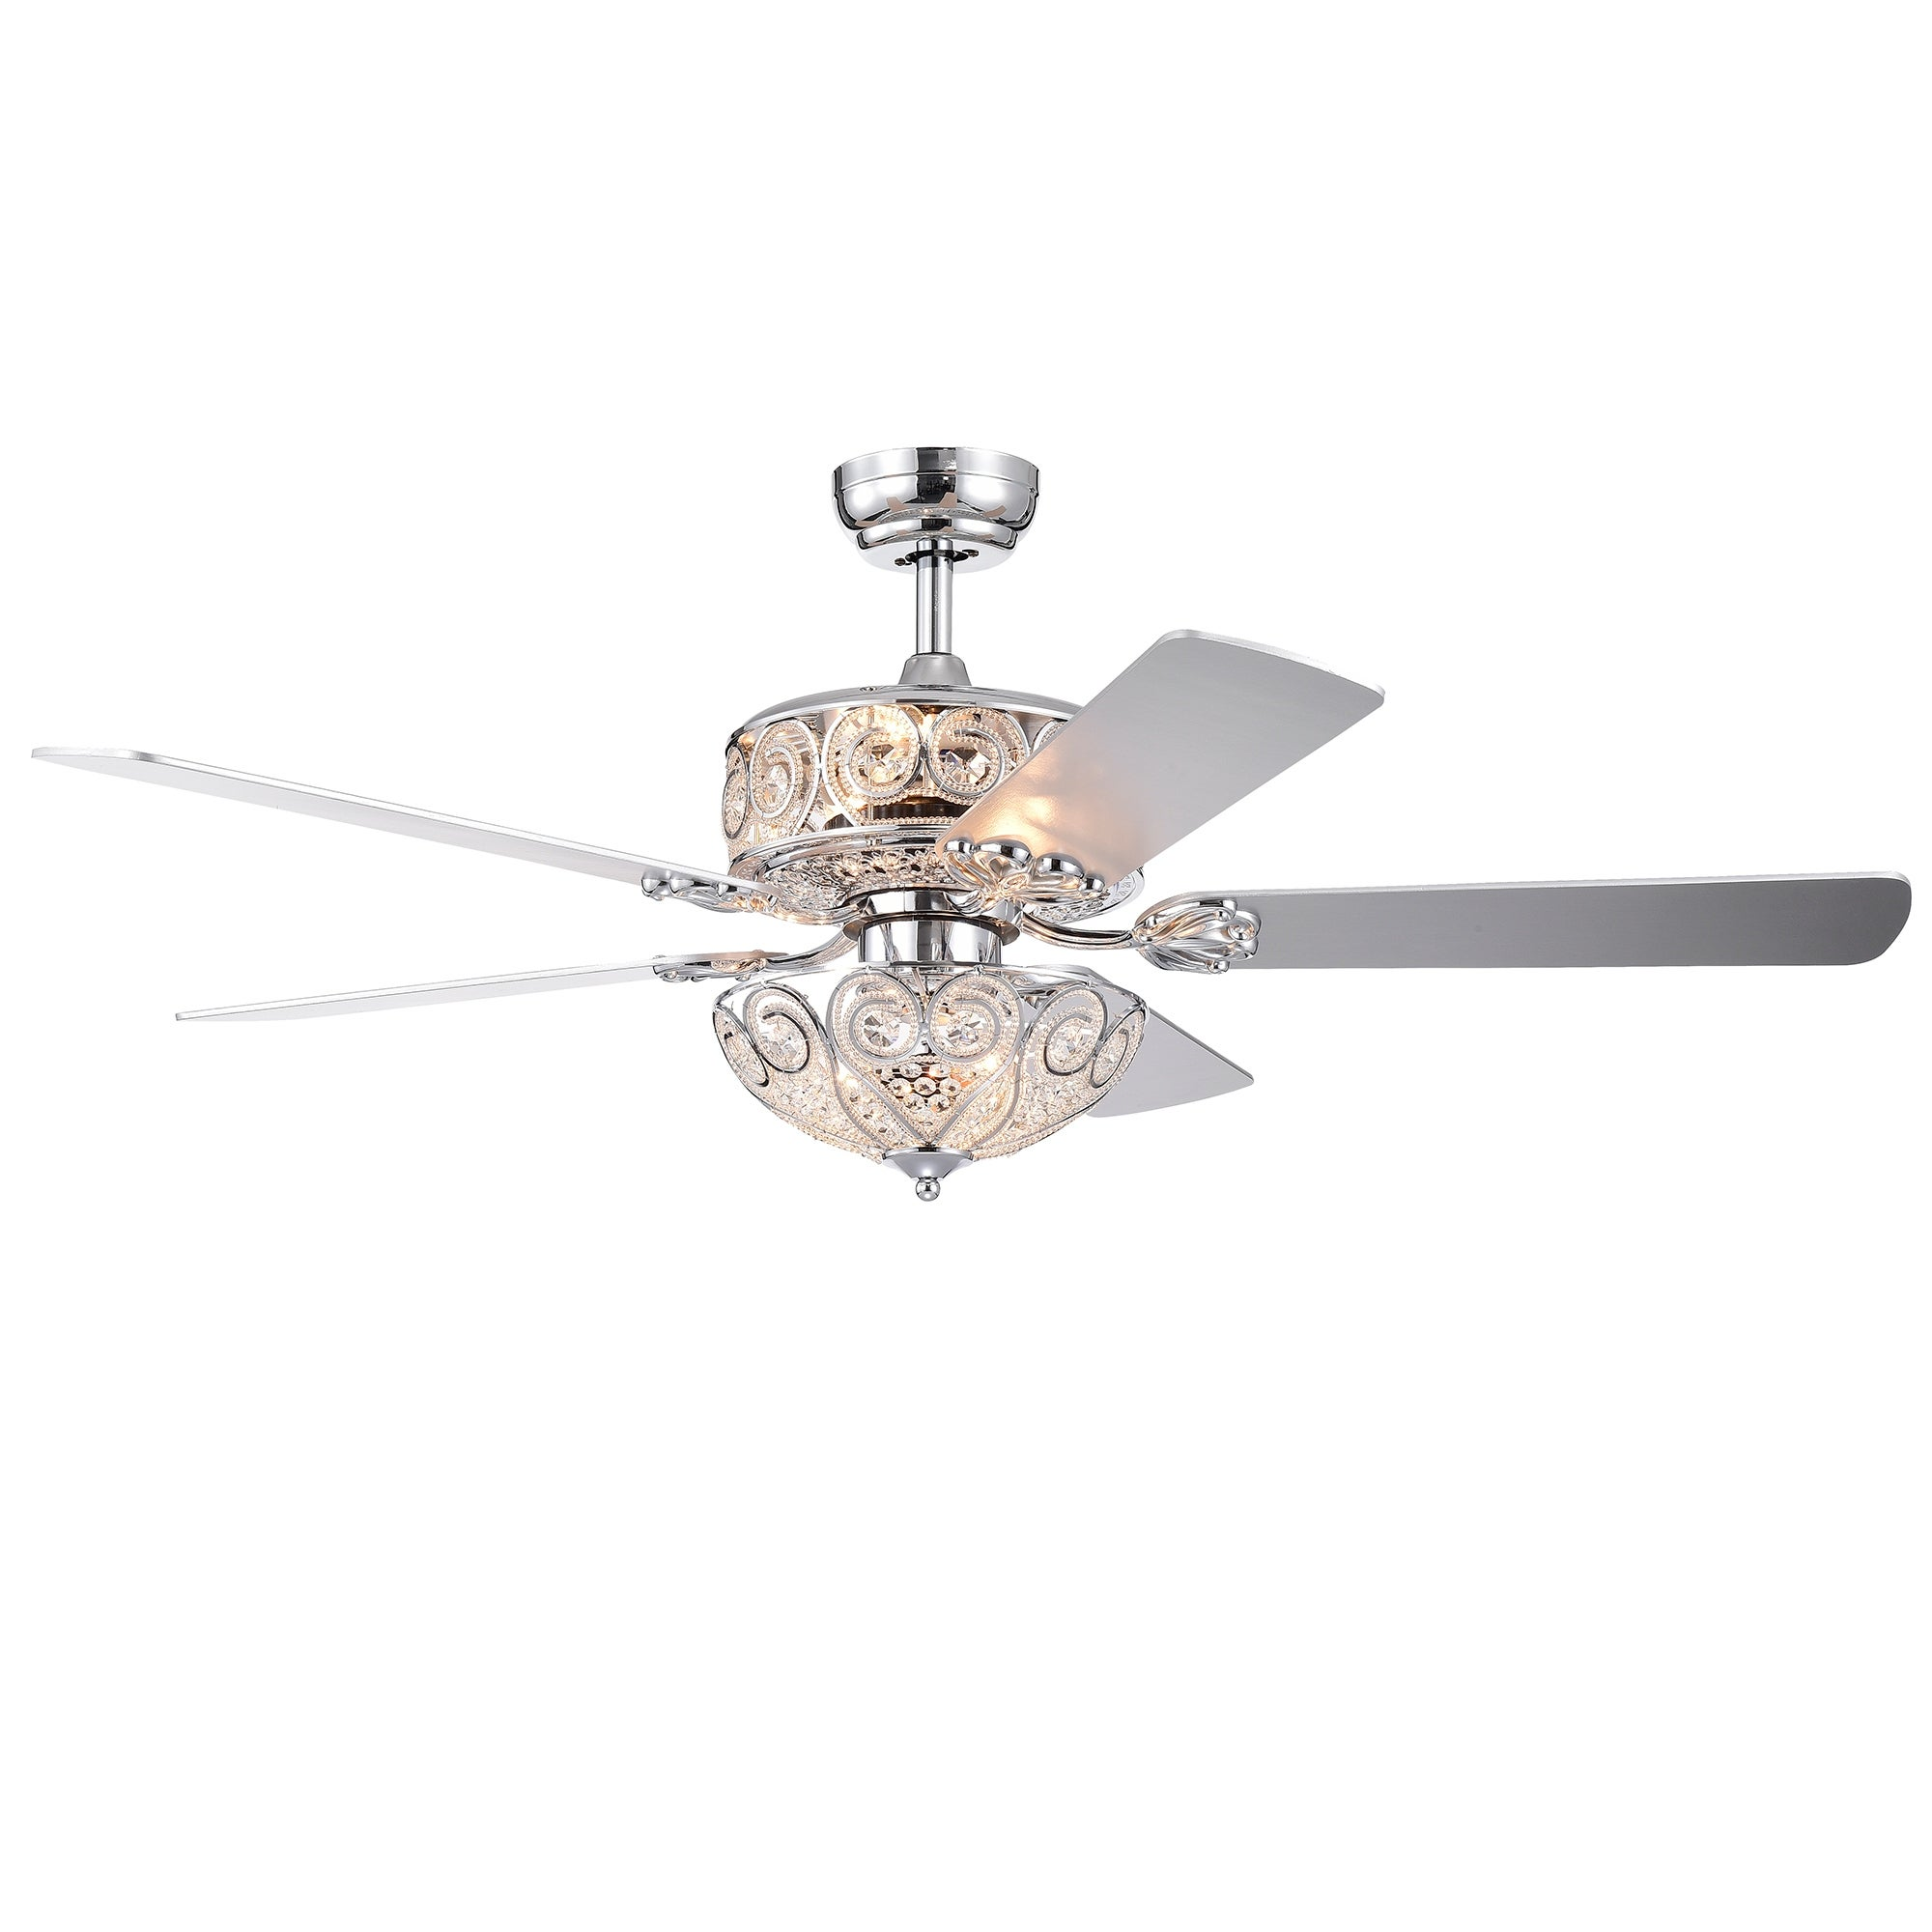 Catalina Chrome 5 Blade 52 Inch Crystal Ceiling Fan Overstock 26386812